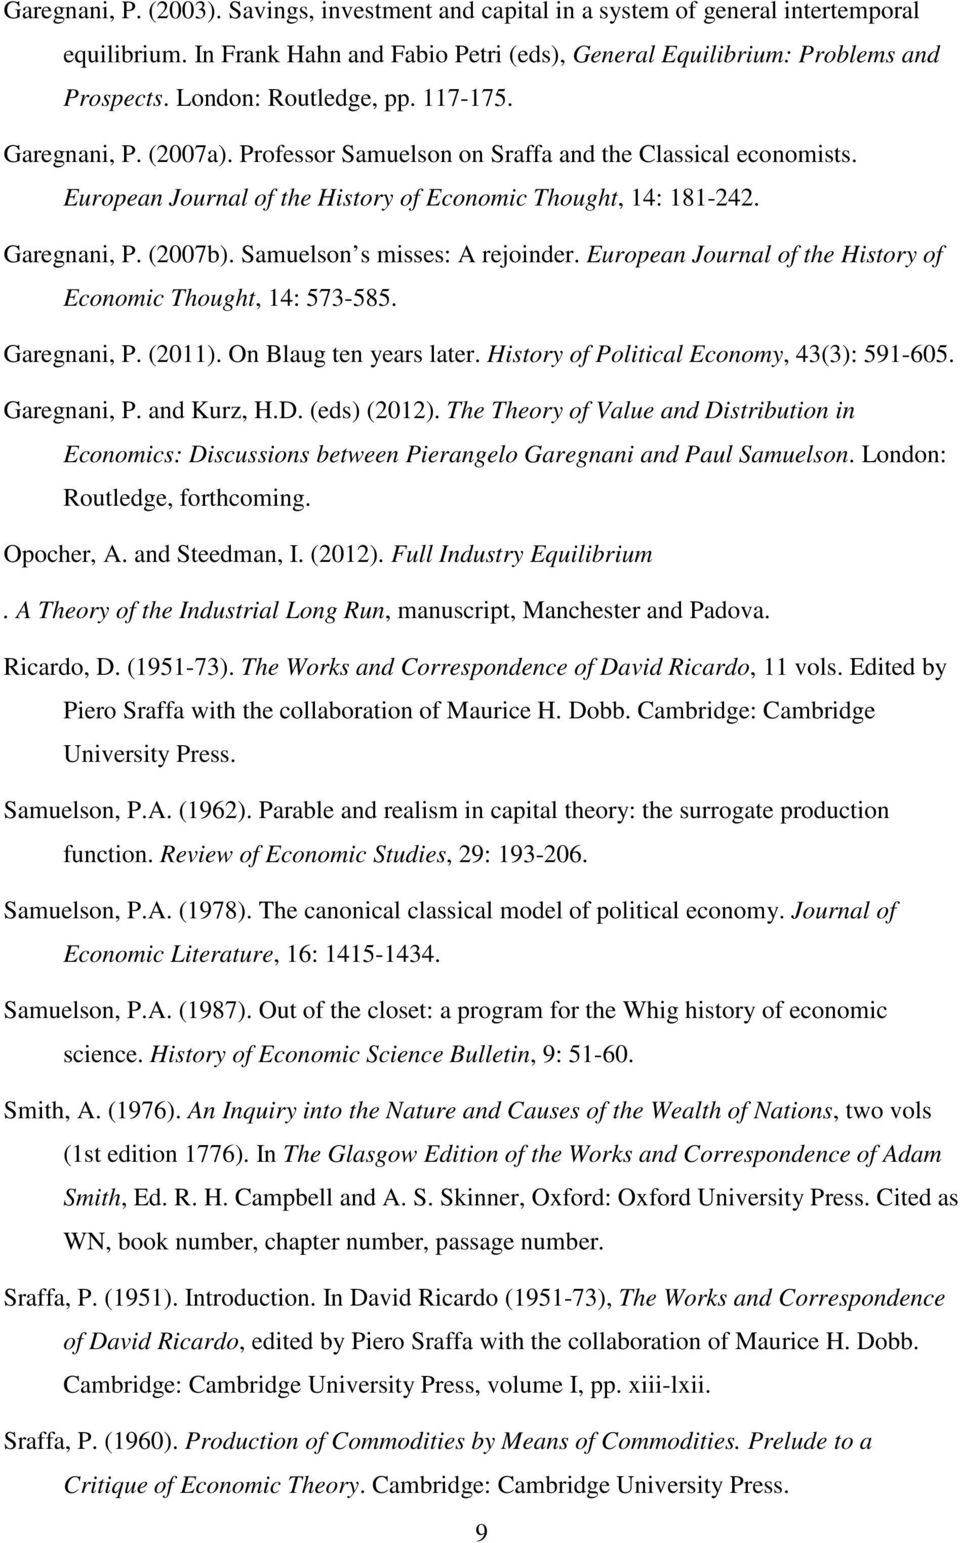 Samuelson s misses: A rejoinder. European Journal of the History of Economic Thought, 14: 573-585. Garegnani, P. (2011). On Blaug ten years later. History of Political Economy, 43(3): 591-605.